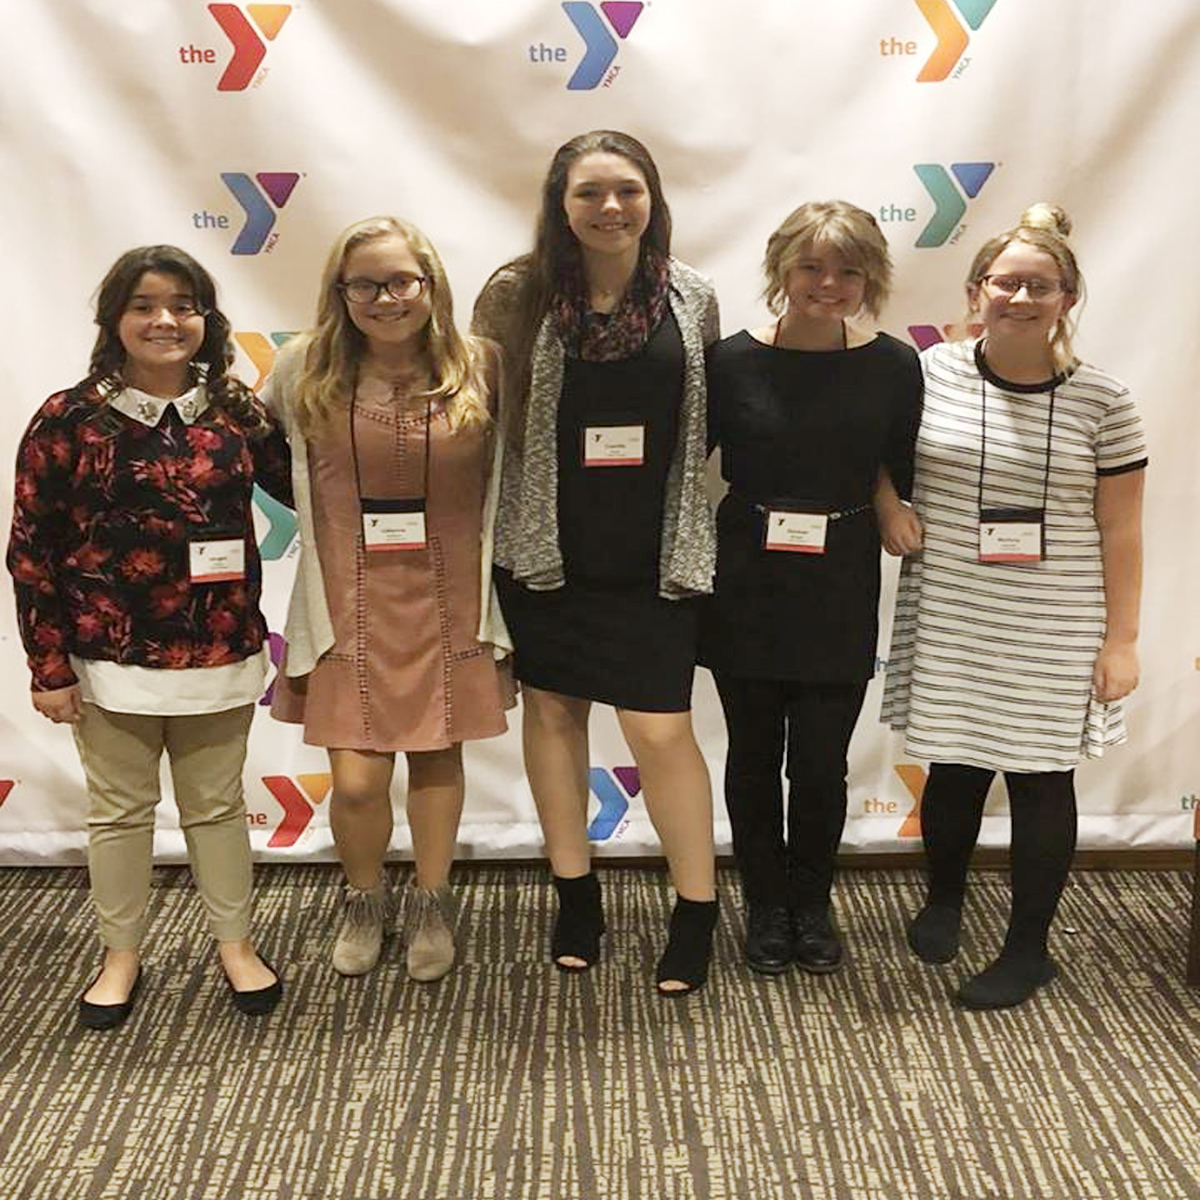 Middle school students Raegan Evans, Lillianna Stafford, Camille Hoop, Kirsten Metzger, and Mallory Holcomb took on the same responsibilities as those who currently work in state government through hands-on legislative experiences.